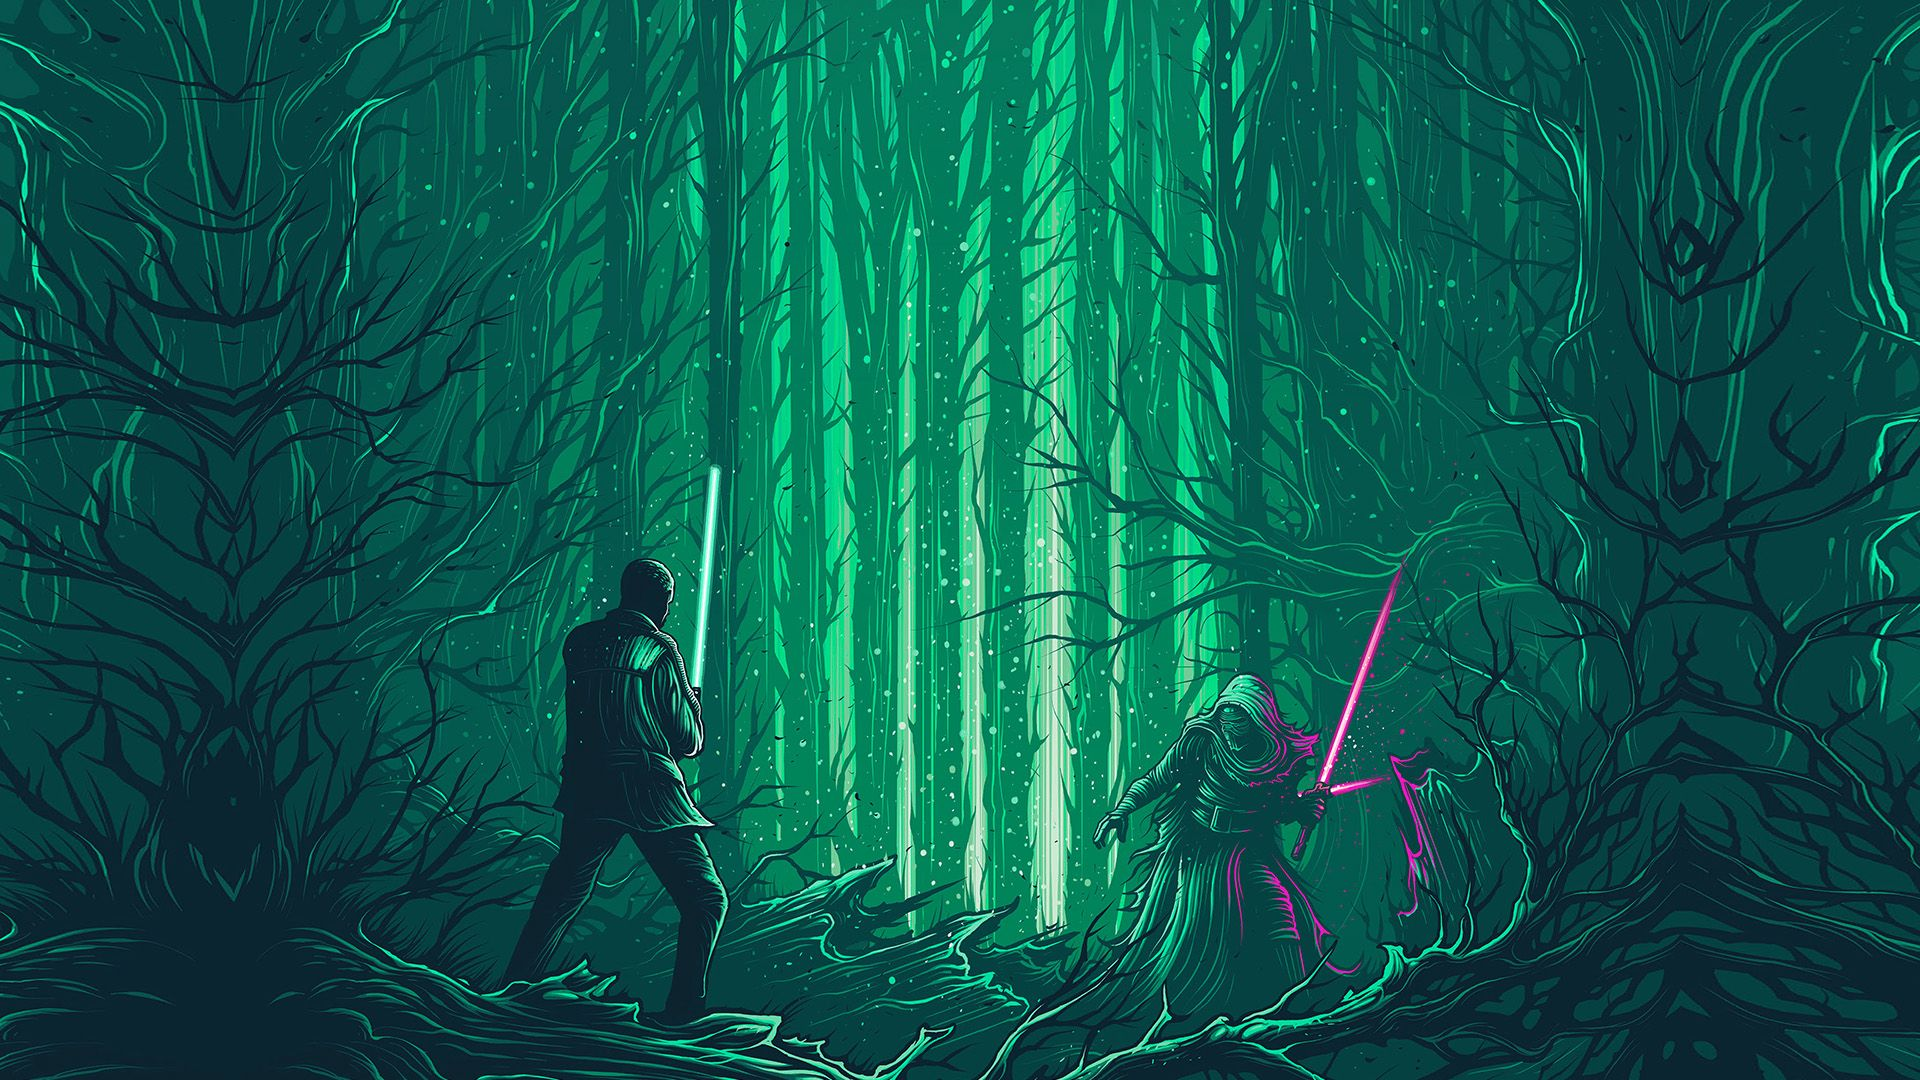 Green Star Wars Wallpapers Top Free Green Star Wars Backgrounds Wallpaperaccess